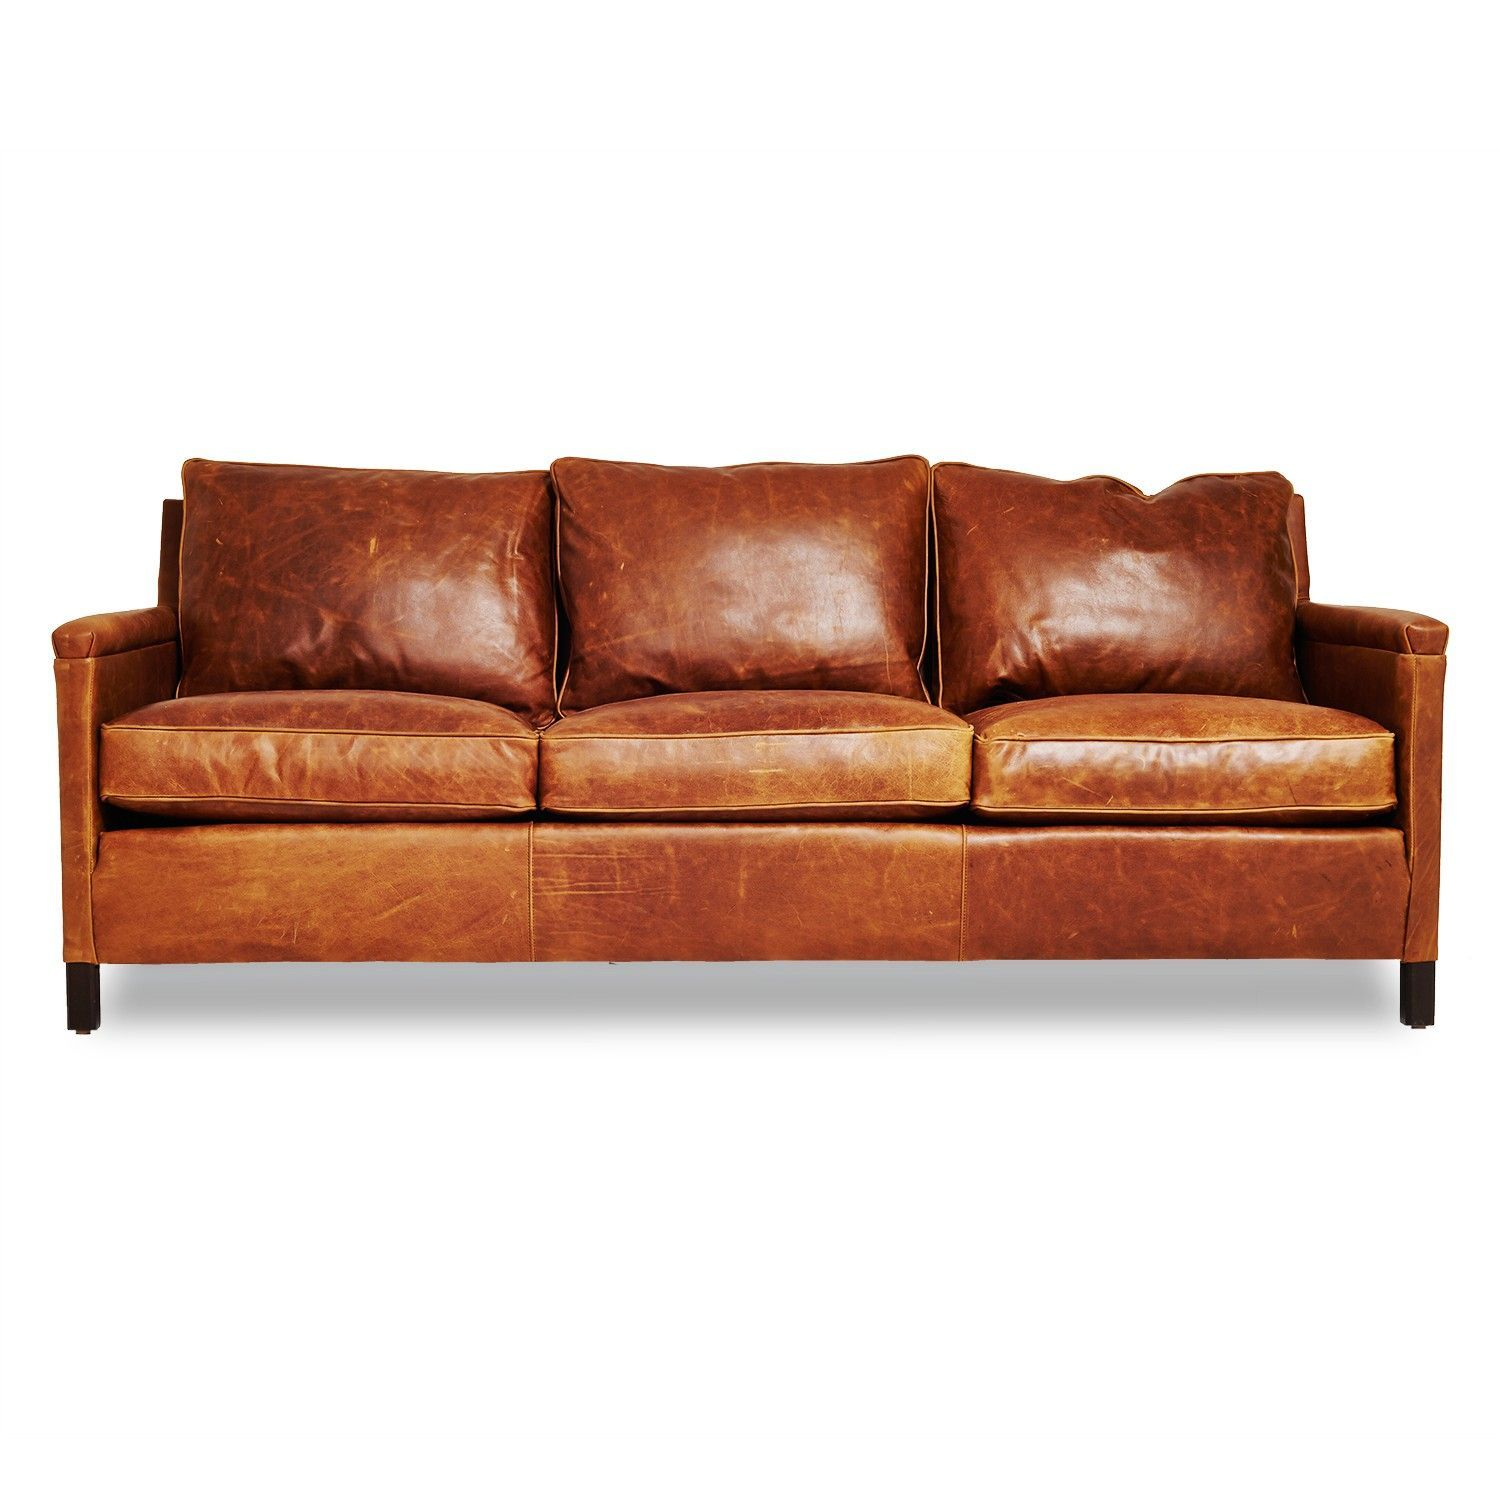 Beautiful brown leathe sofa and pillows with wooden frame